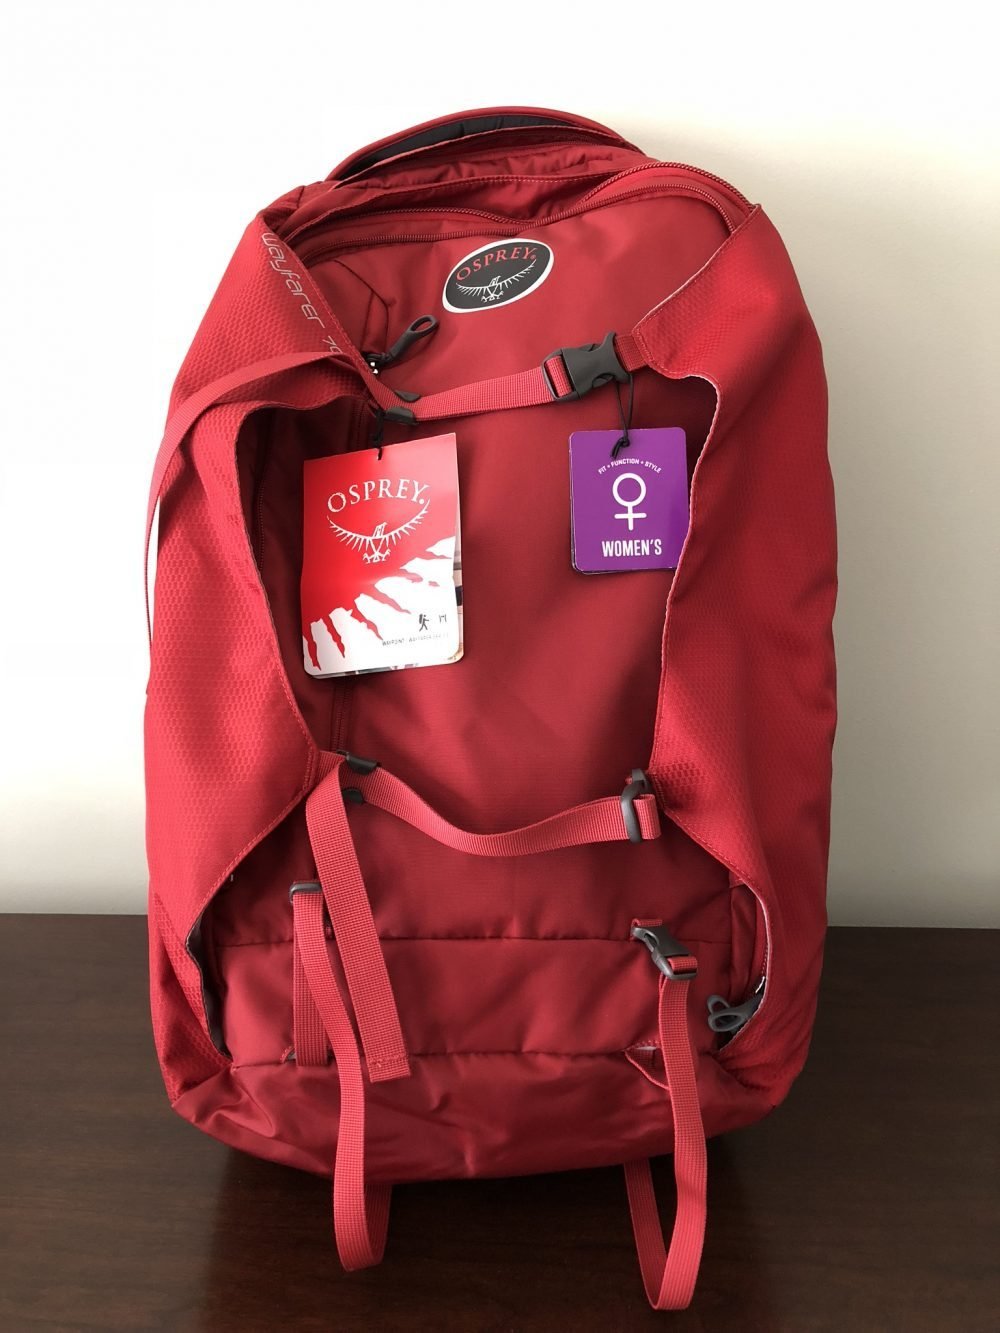 Travel Quips Prize Pack Giveaway: Contest Signup - Travel Quips